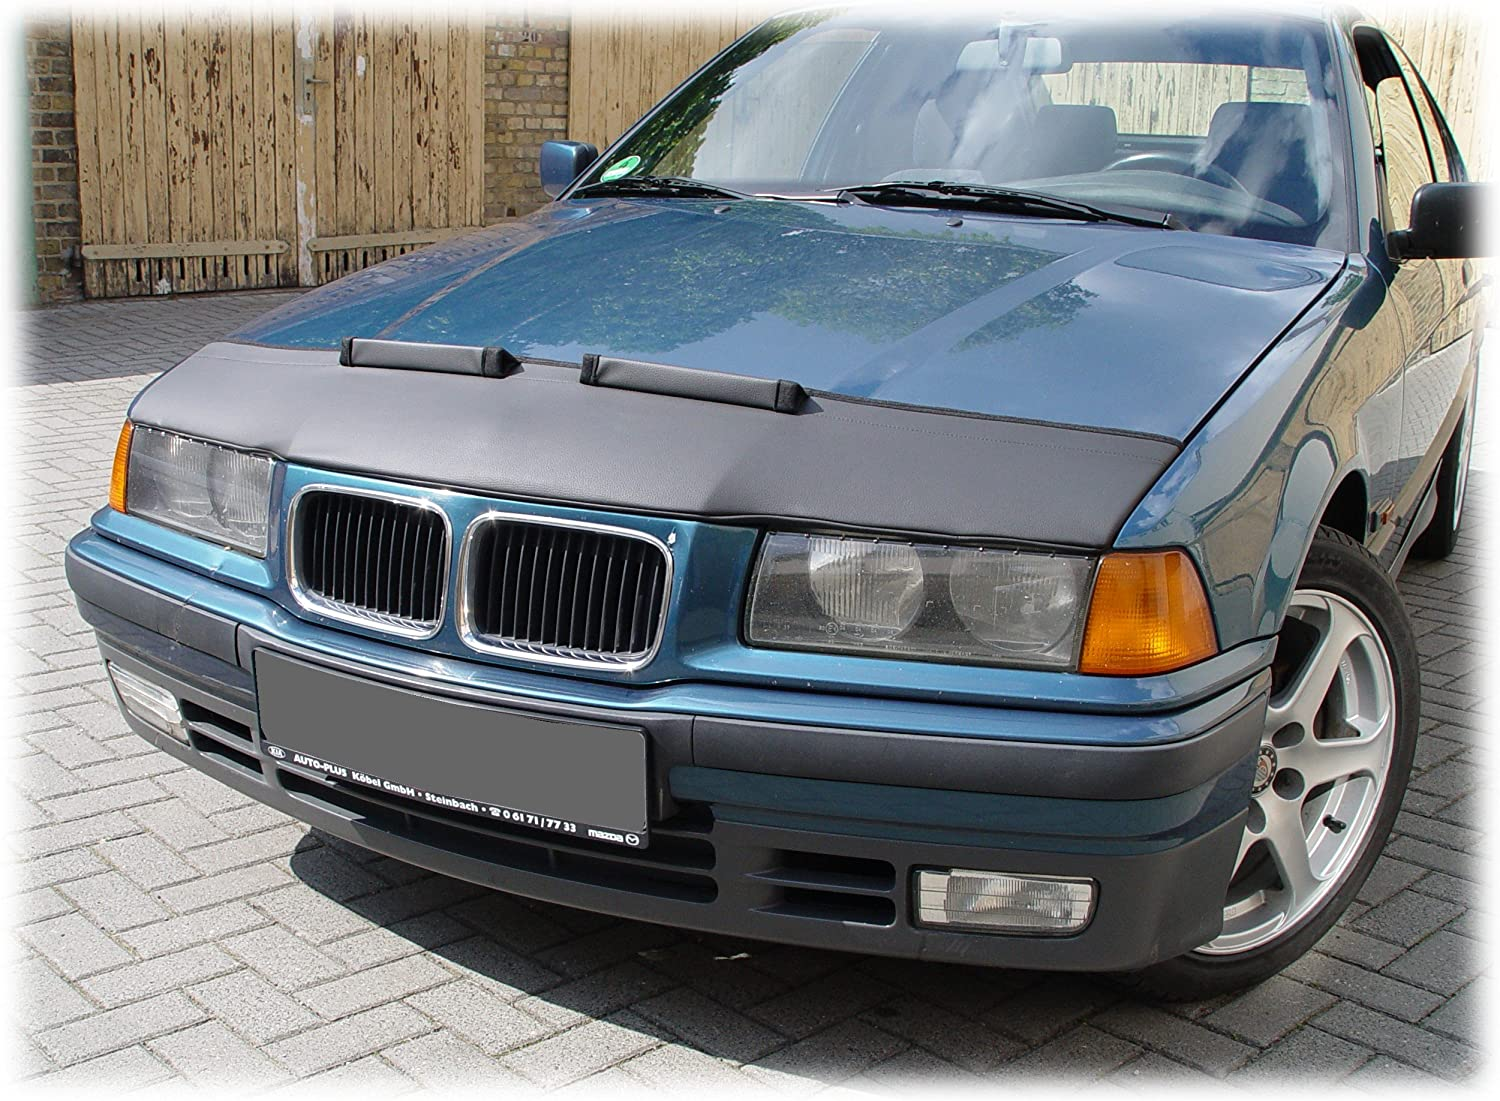 HOOD BRA Front End Nose Mask for BMW 3 E36 1990-2000 Bonnet Bra STONEGUARD PROTECTOR TUNING